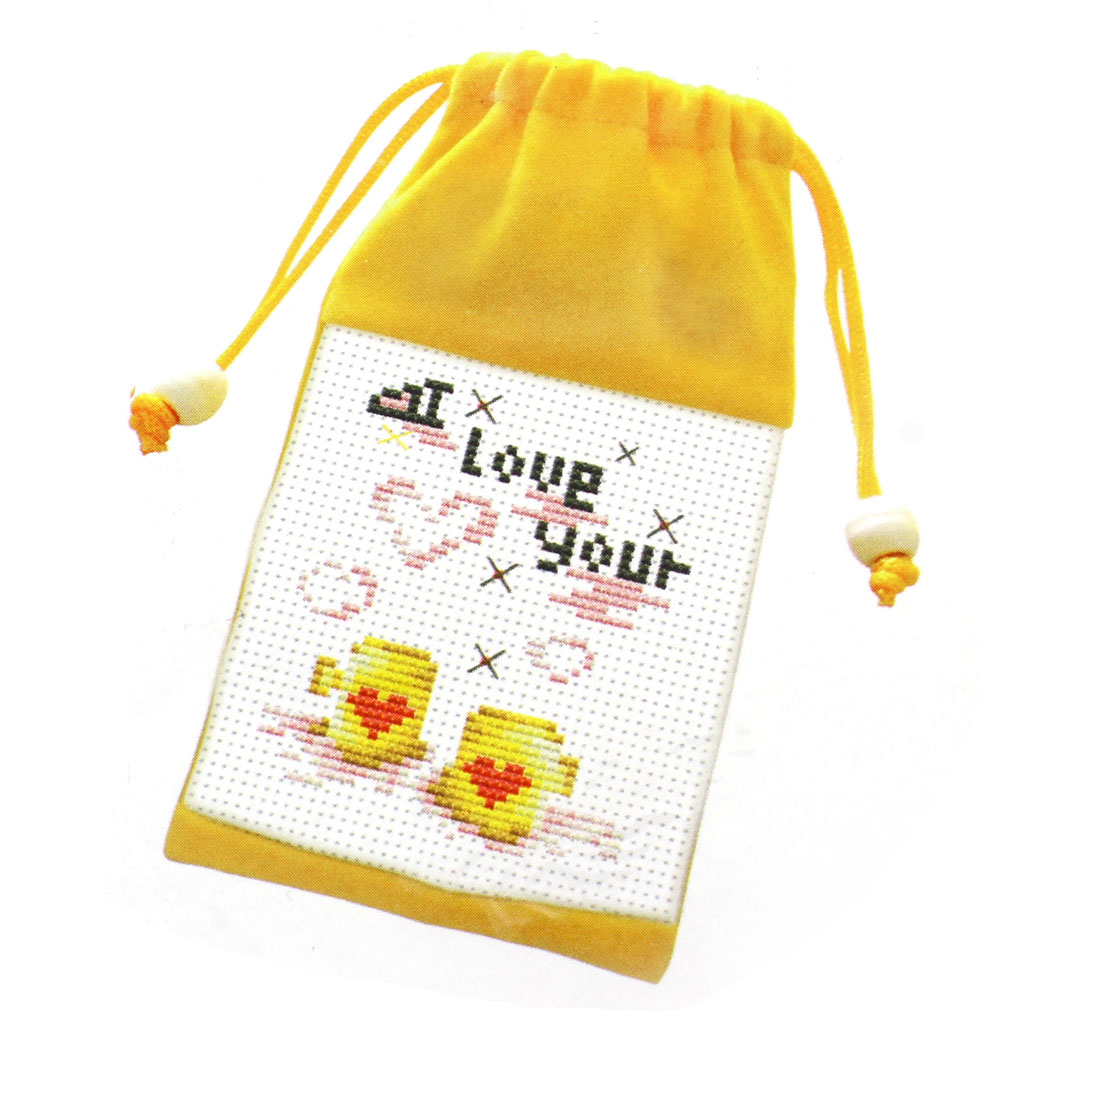 Letter Heart Printed Cross Stitch Counted Kit Cell Phone Bag Holder